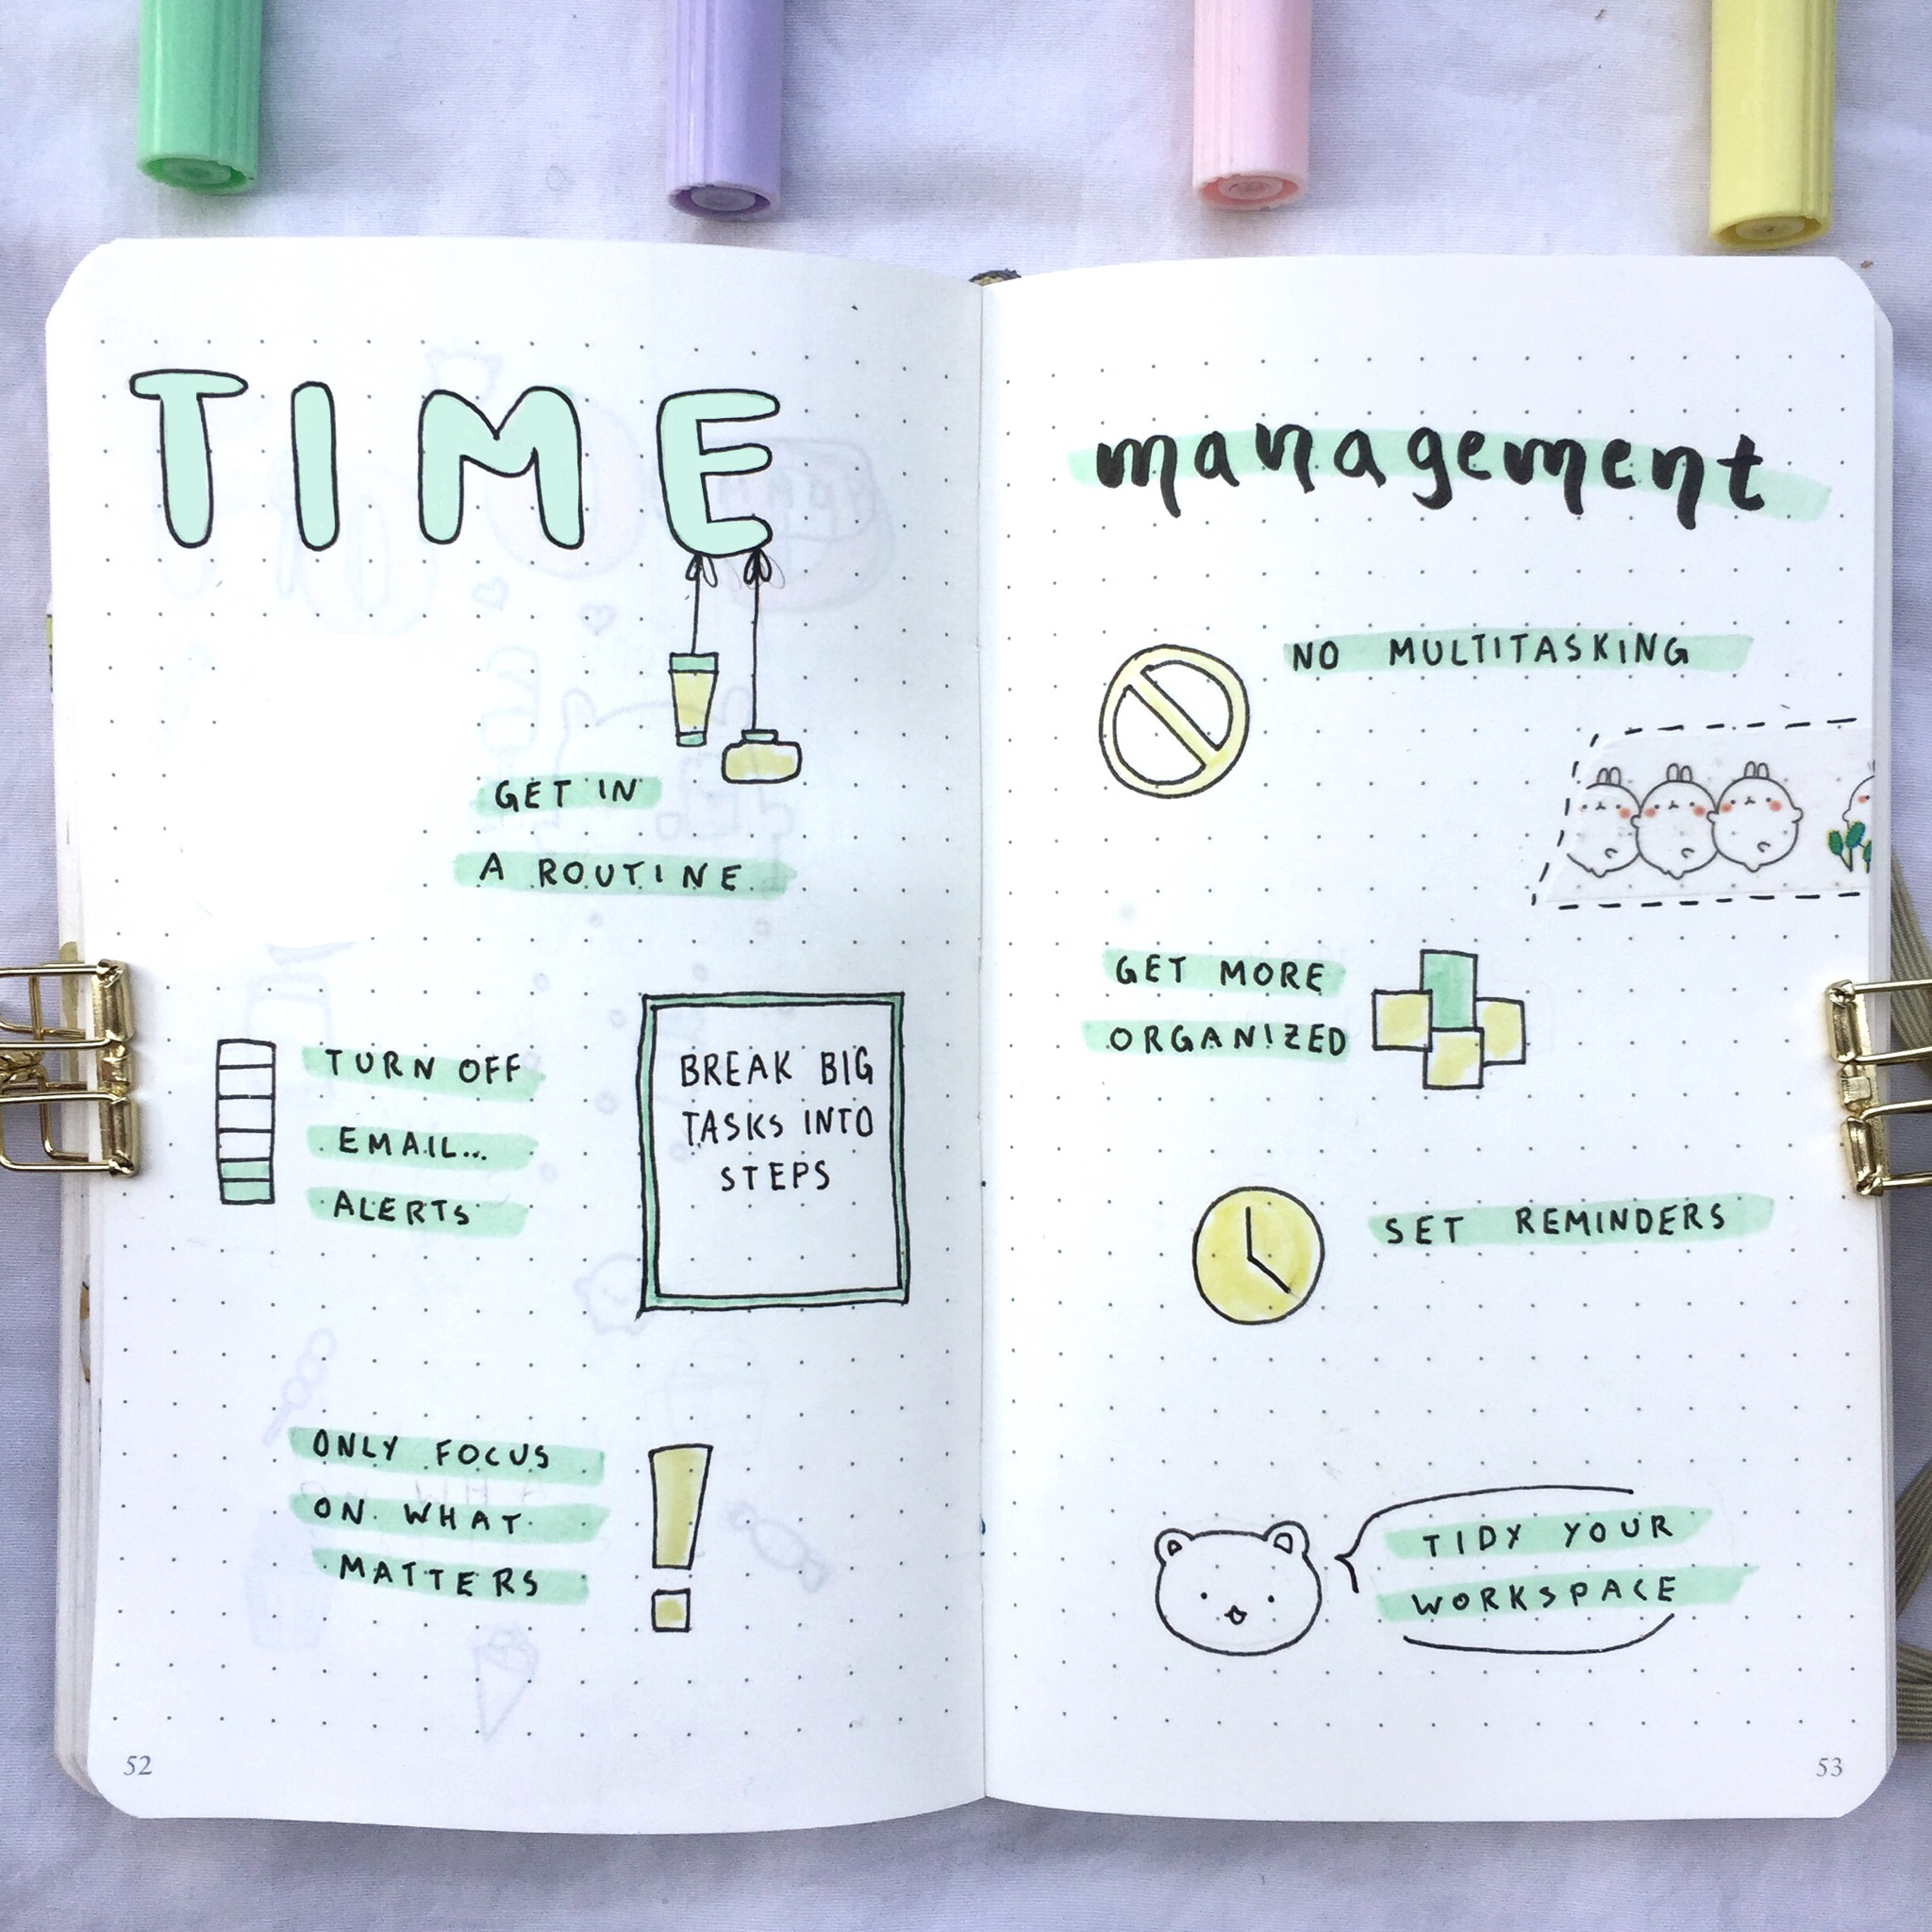 Marie shares simple and useful hacks to time management.